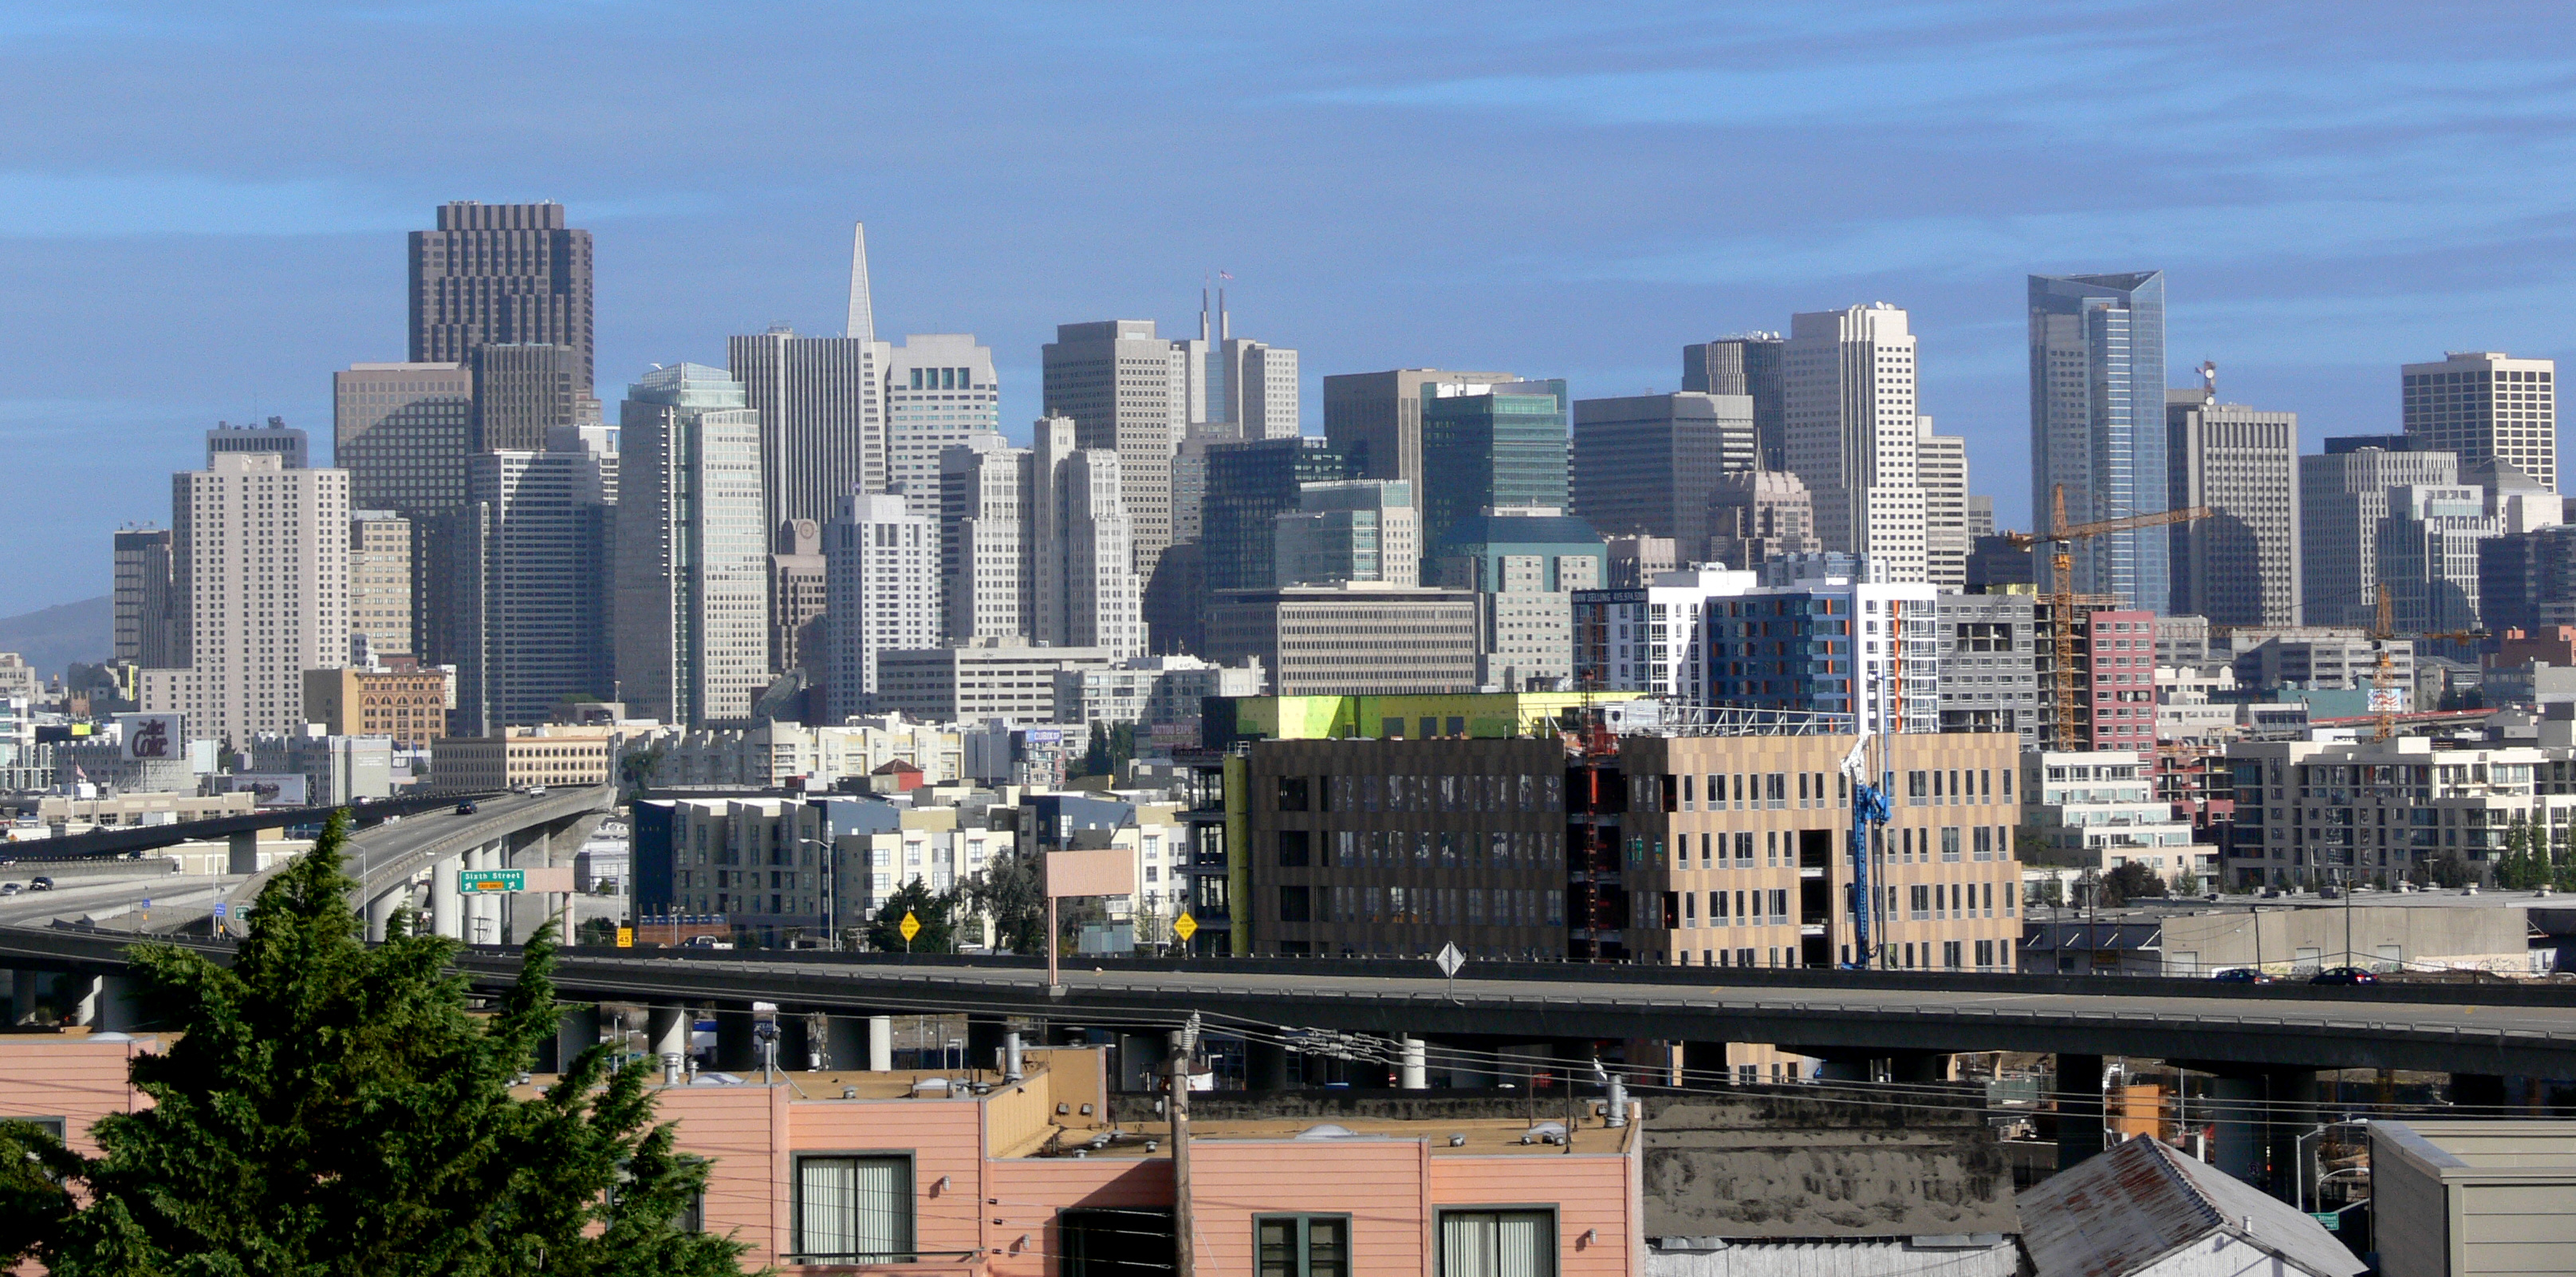 File:San Francisco skyline from Potrero Hill.jpg ...